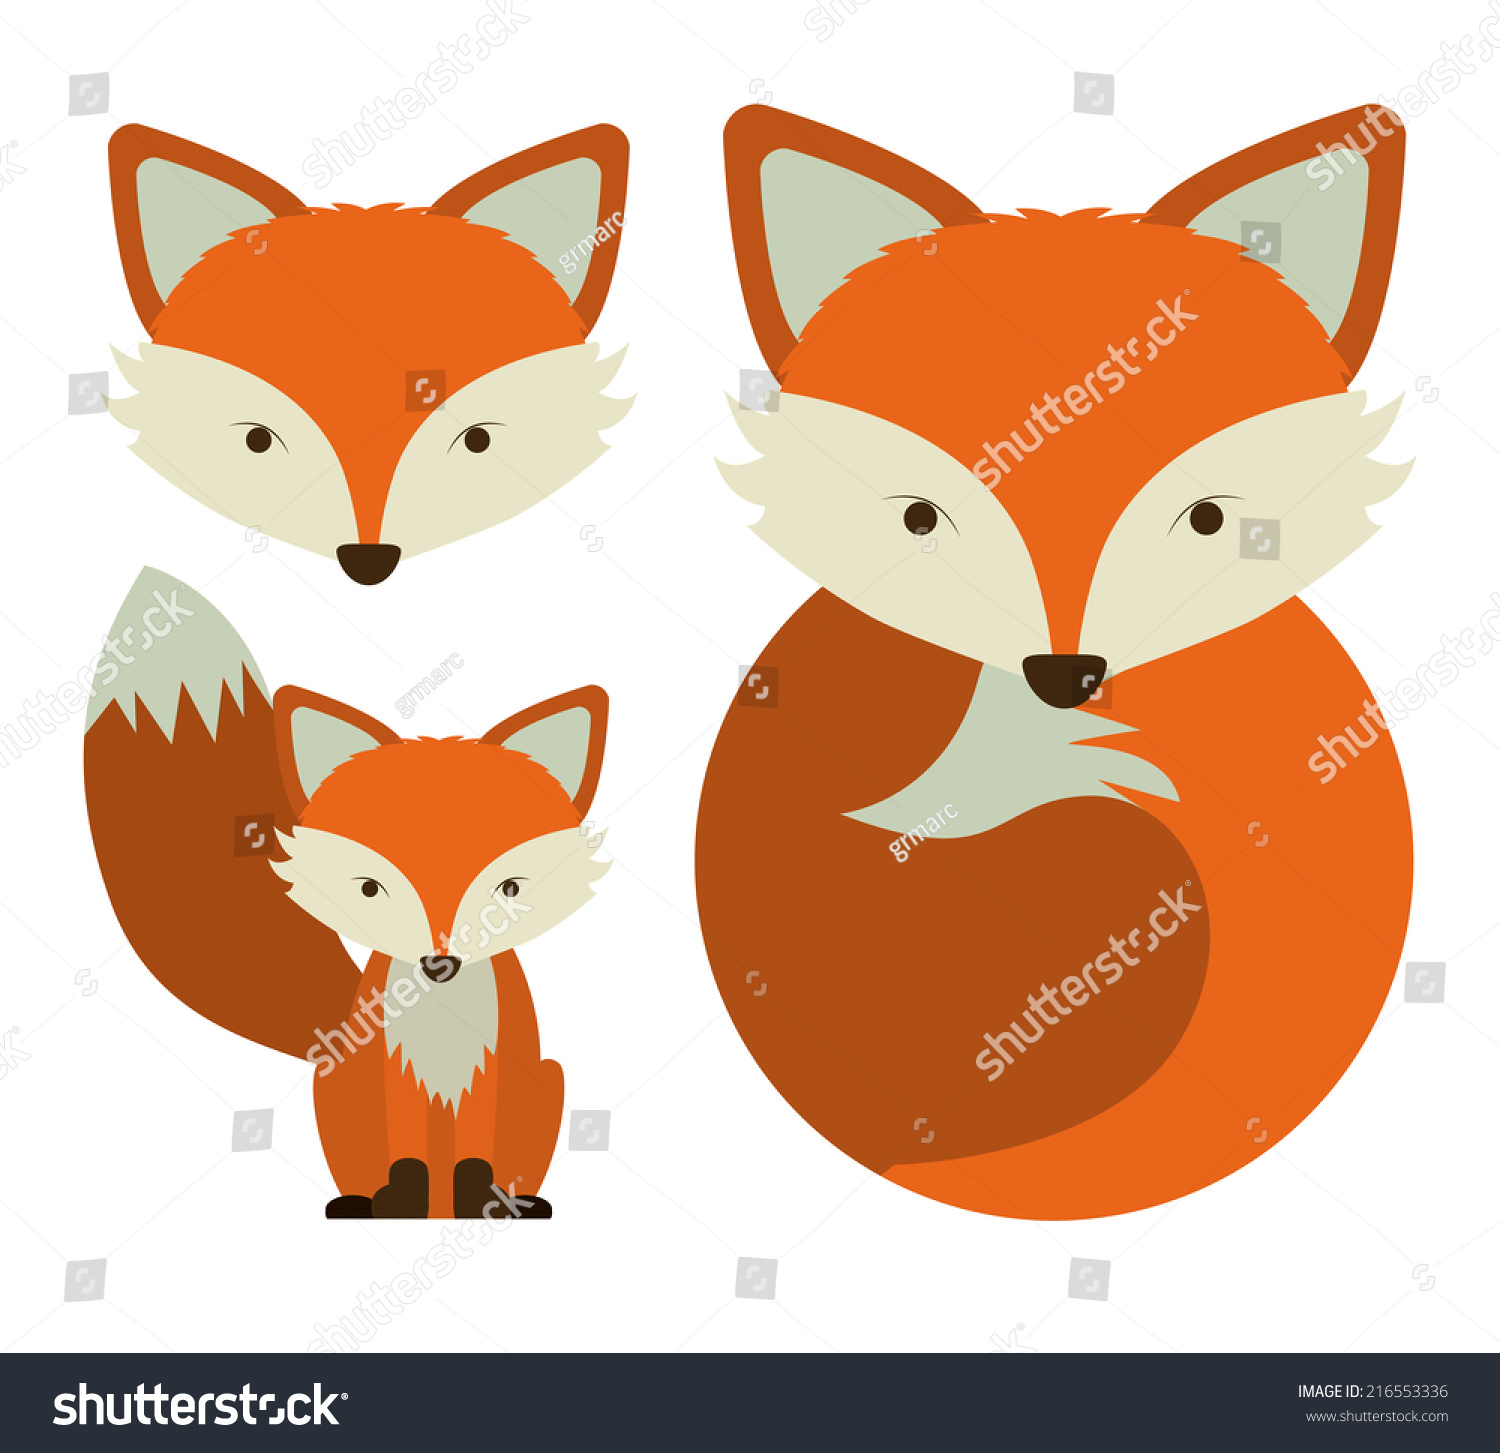 stockvectoranimaldesignoverwhitebackgroundvector